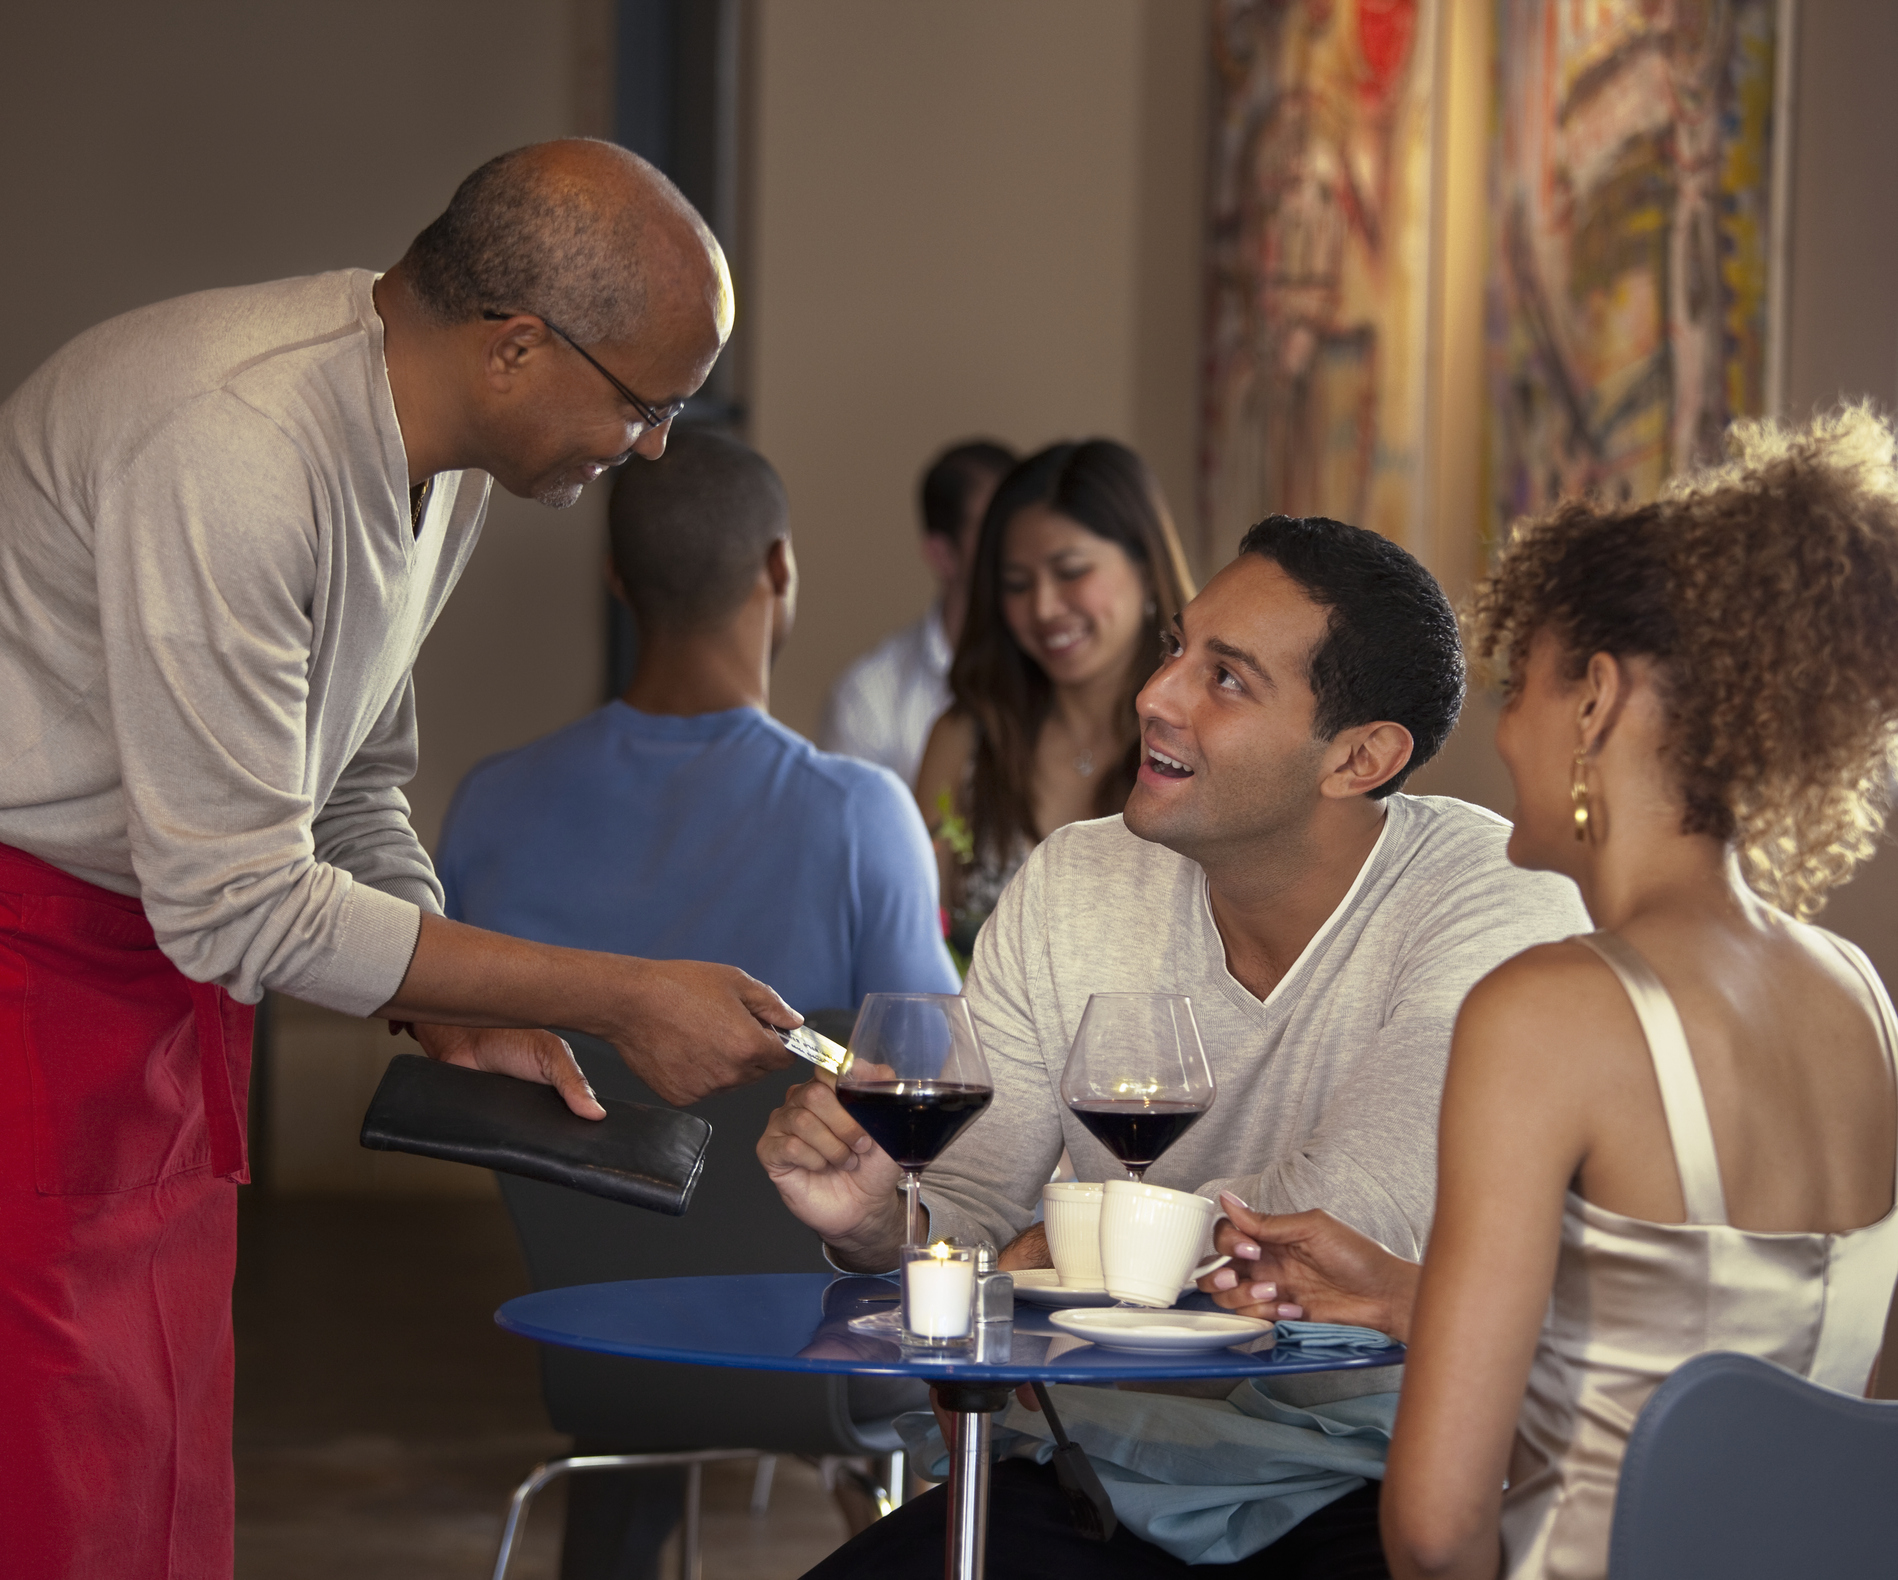 Customers paying waiter at restaurant.